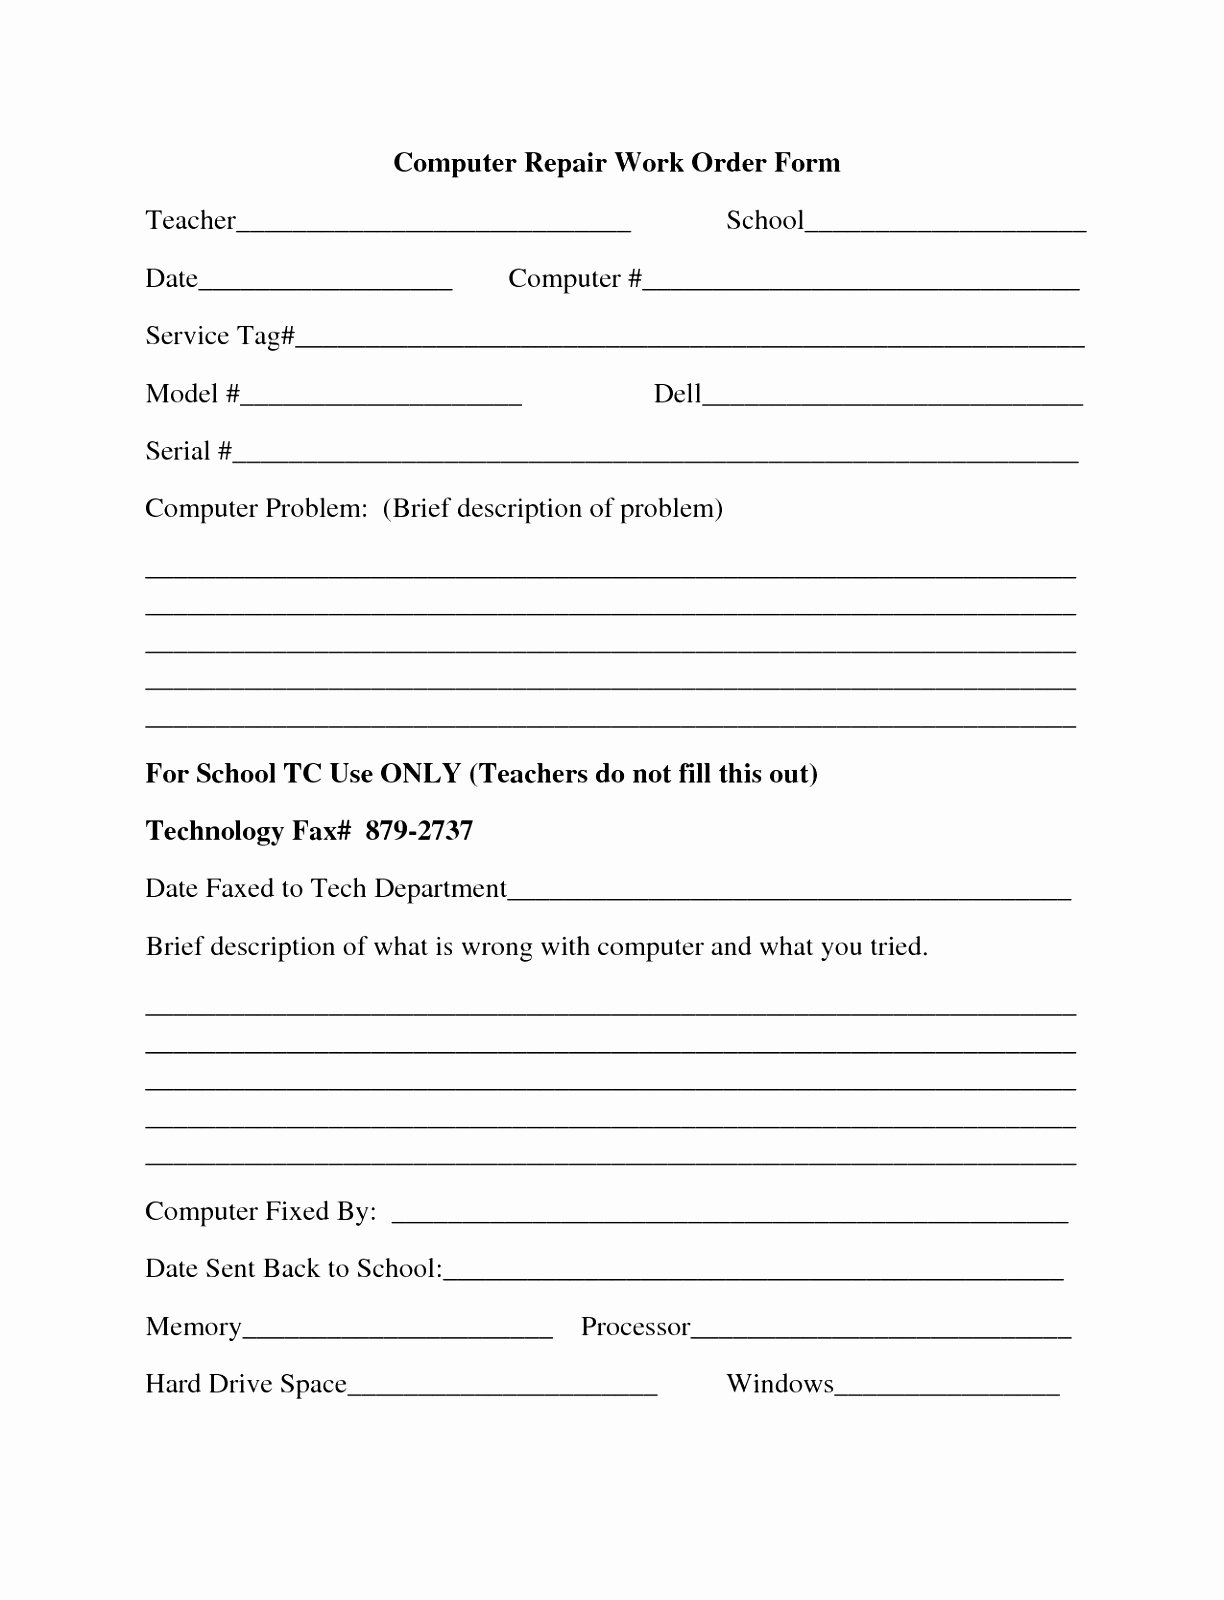 Marketing Project Request form Template Elegant 12 Invoice Request form Template Yipry